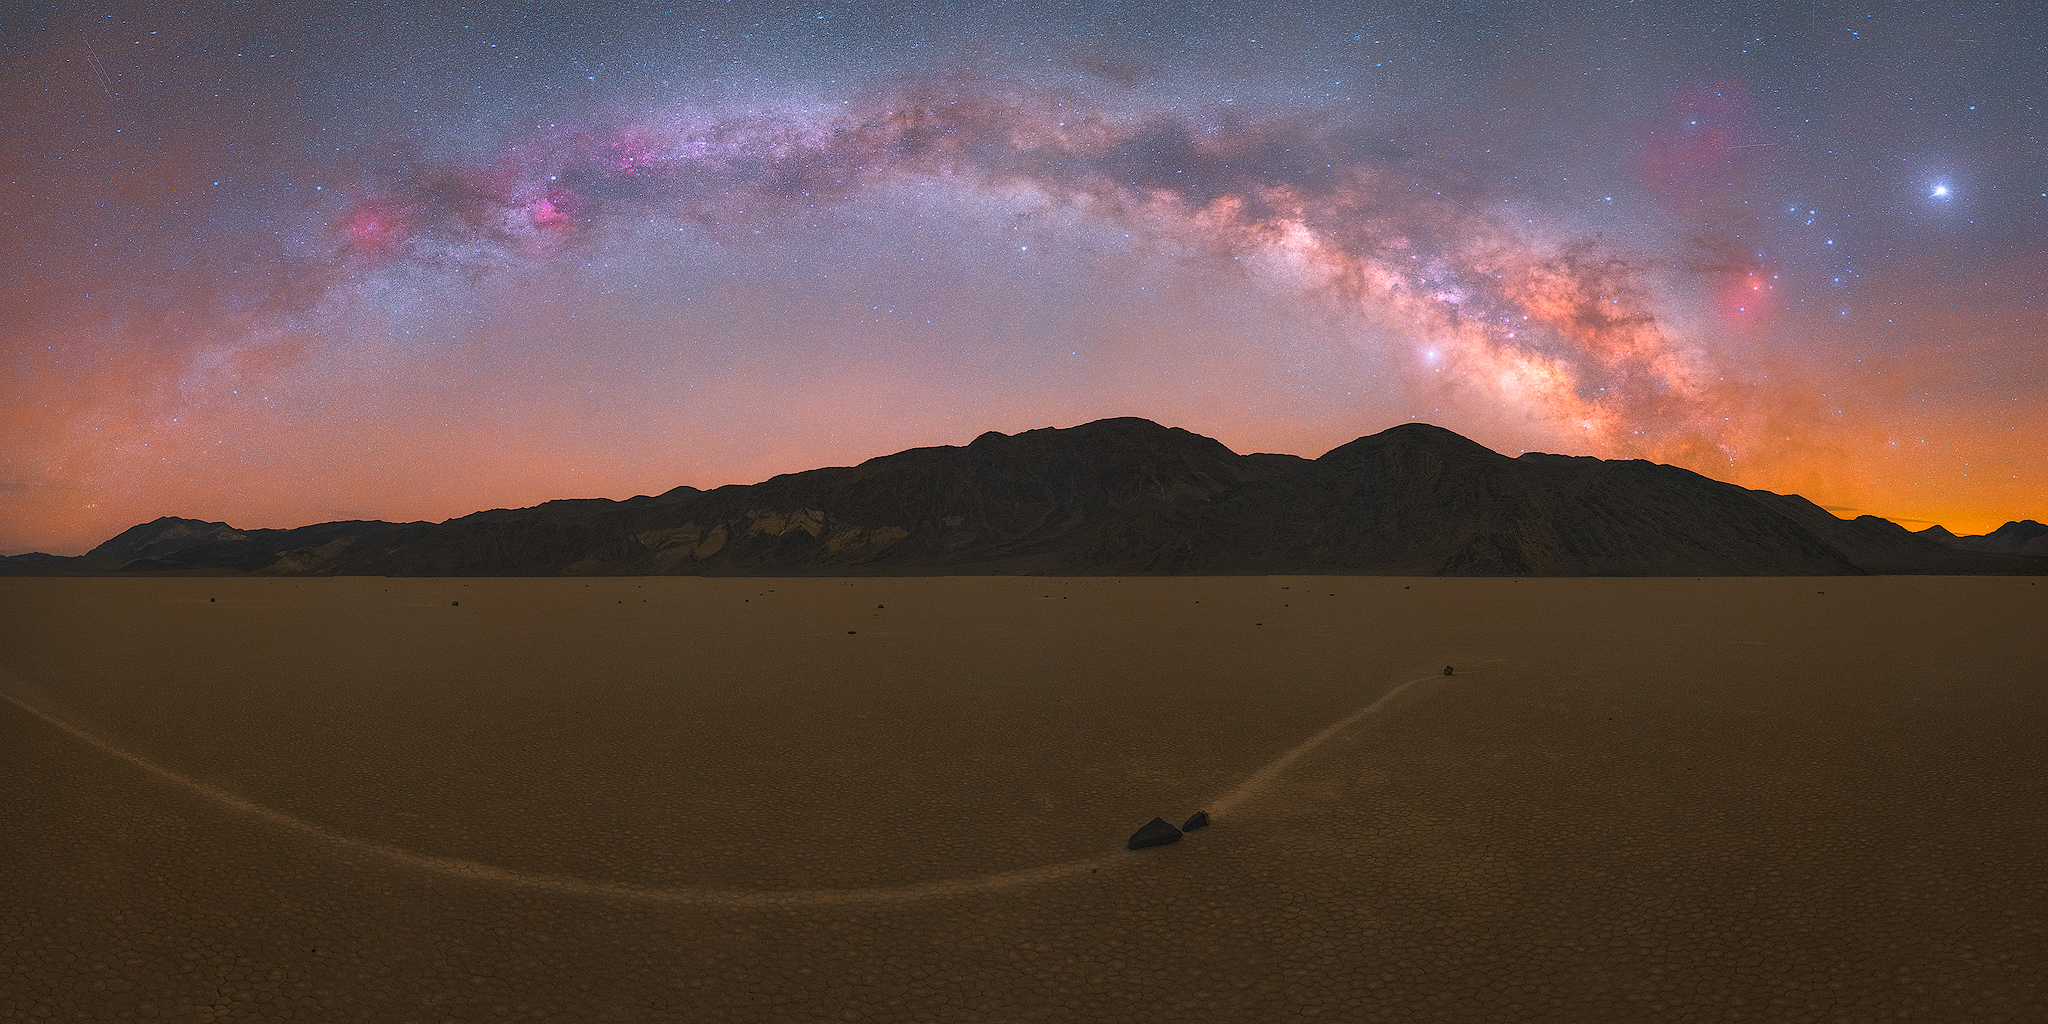 Sailing stones under the night sky. CLICK TO ENLARGE